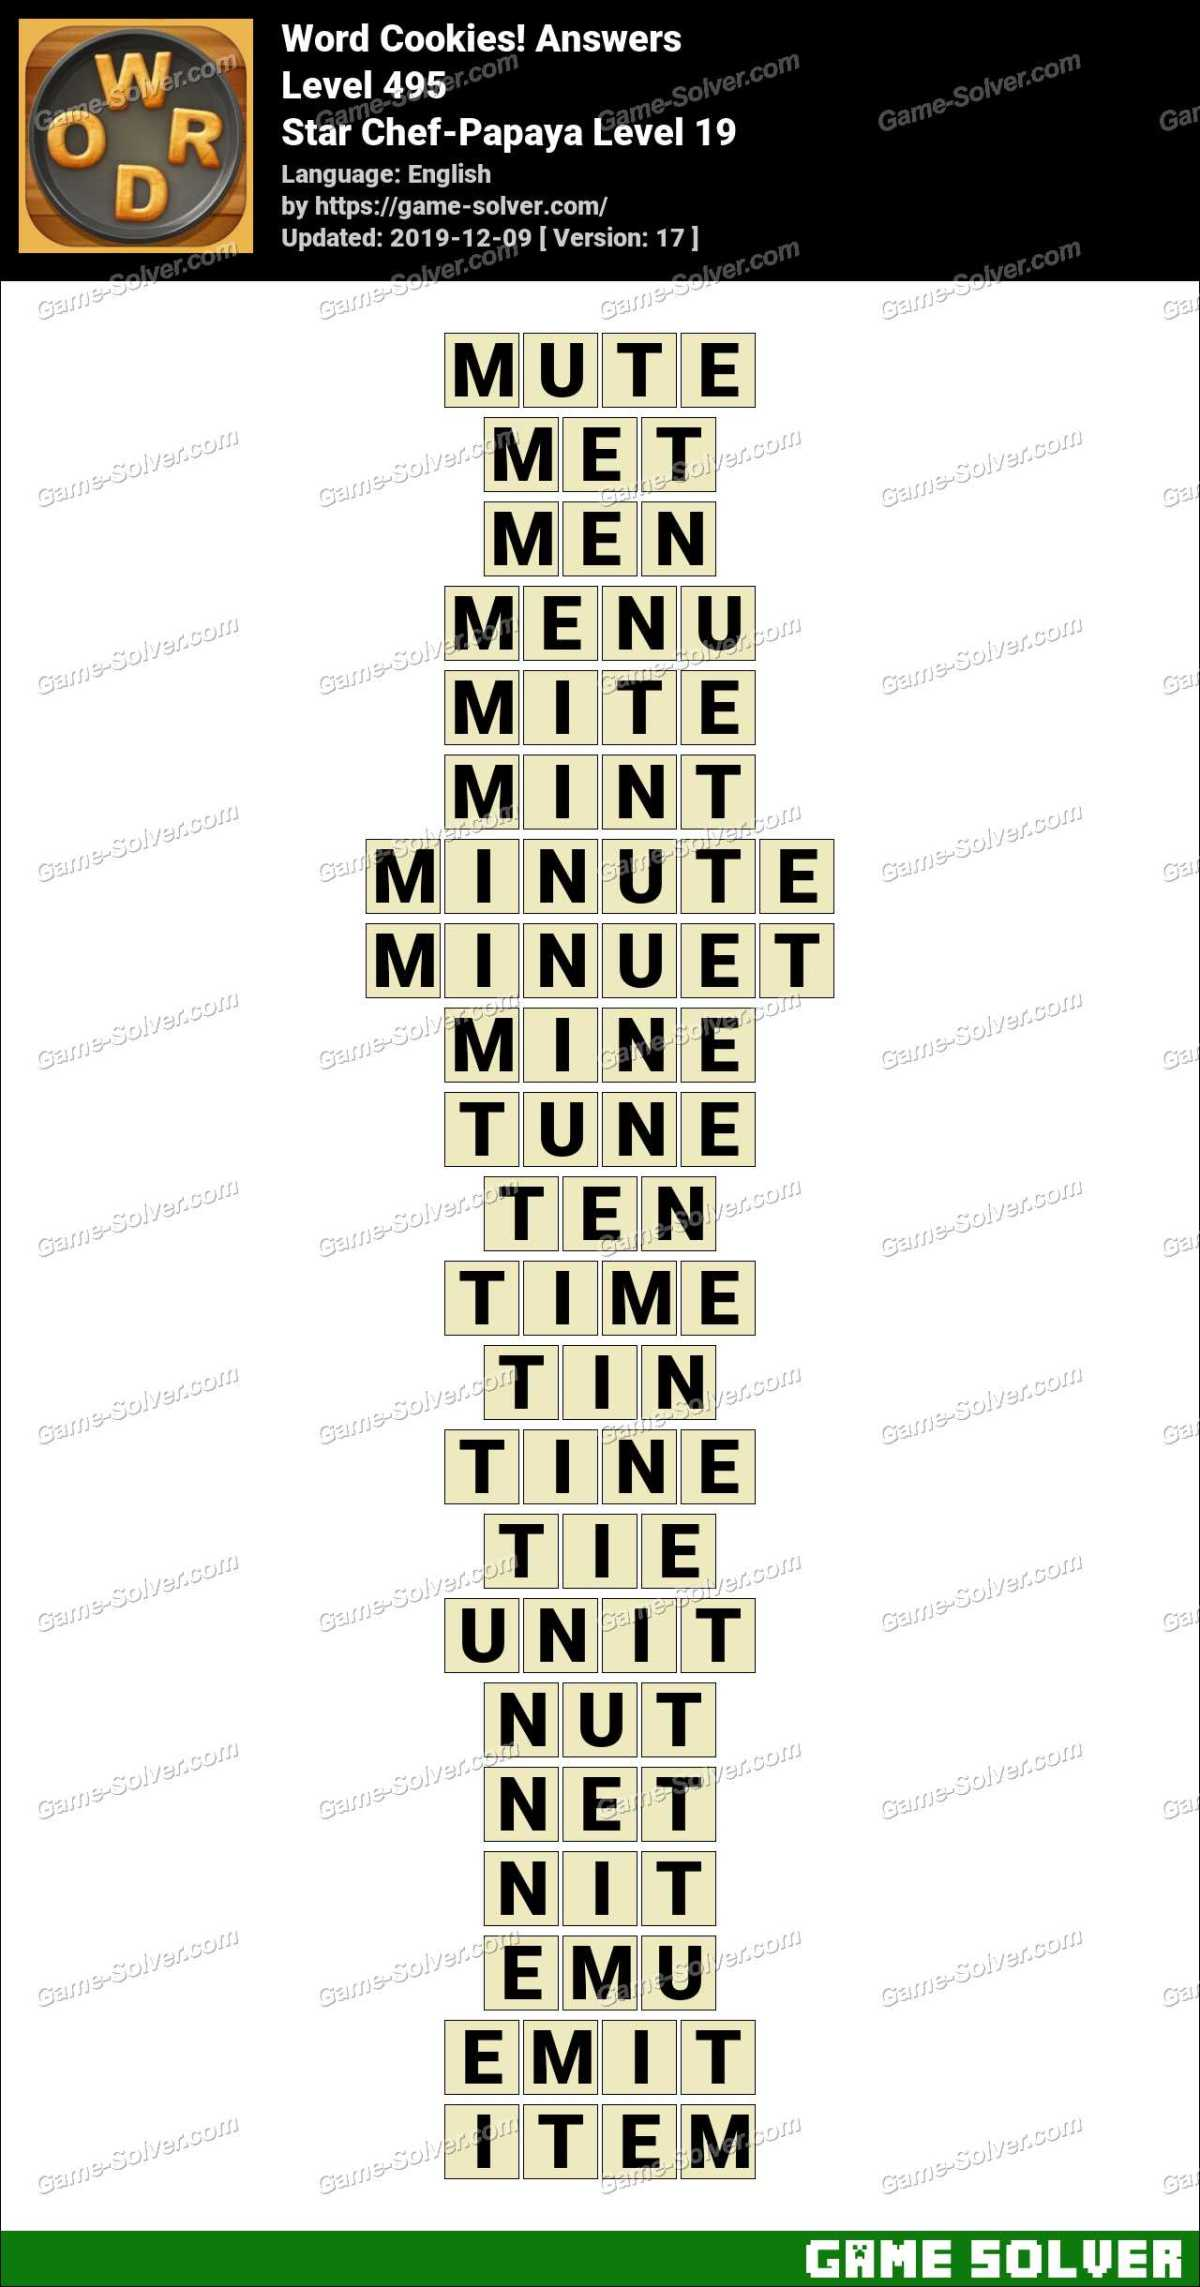 Word Cookies Star Chef-Papaya Level 19 Answers